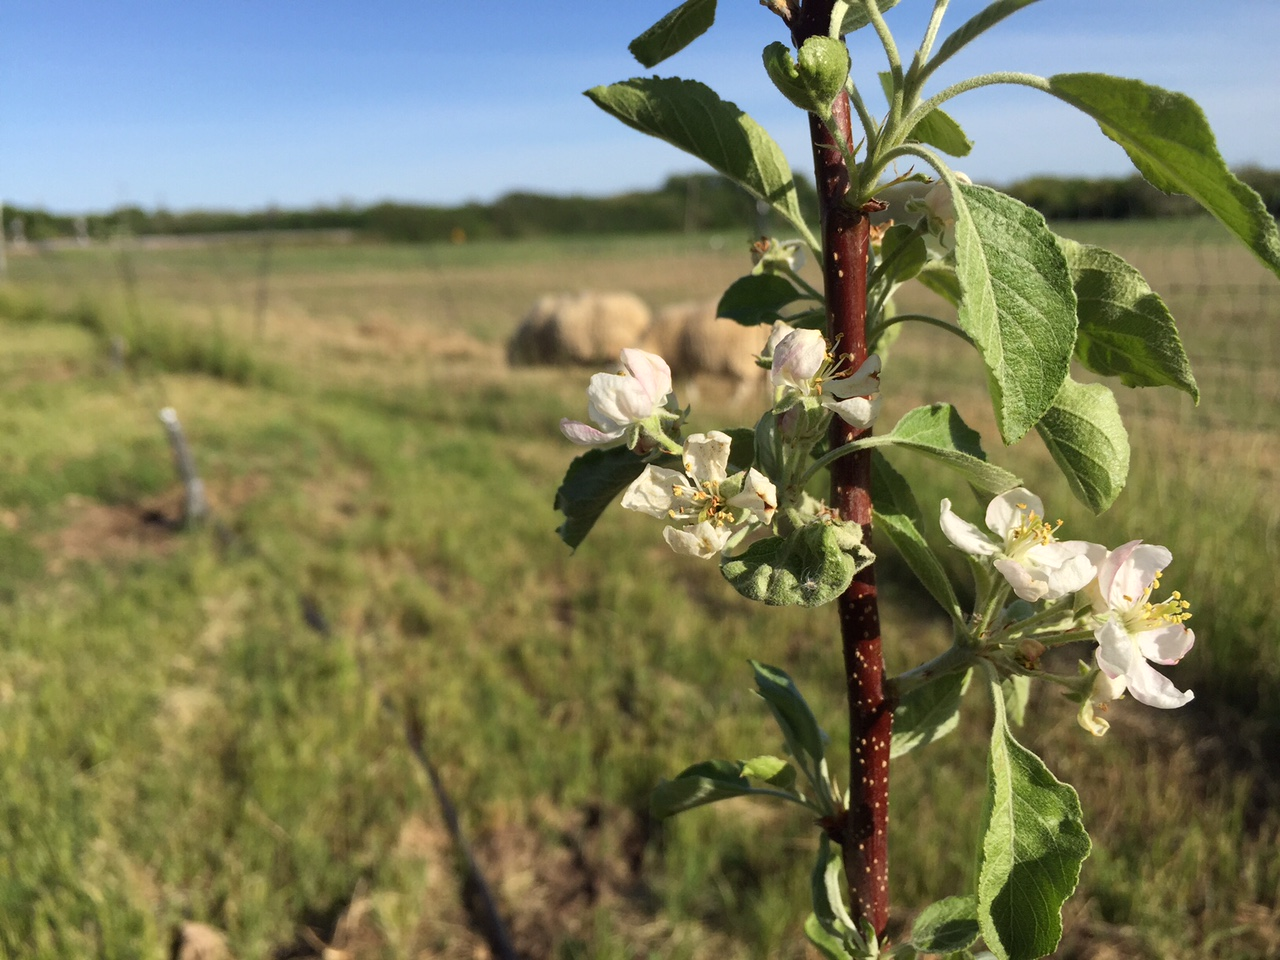 Cider apple blossom and sheep